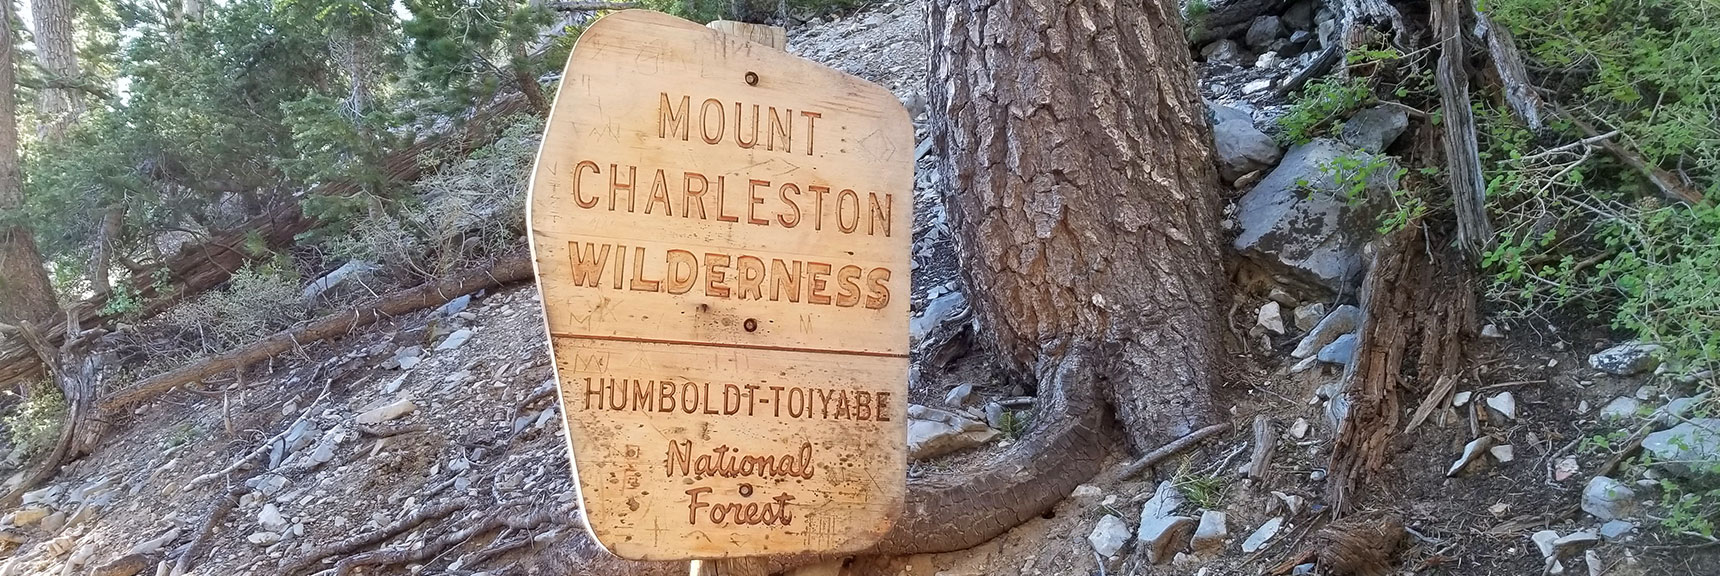 About Half Way to Griffith Peak on South Climb Trail in Mt Charleston Wilderness, Nevada